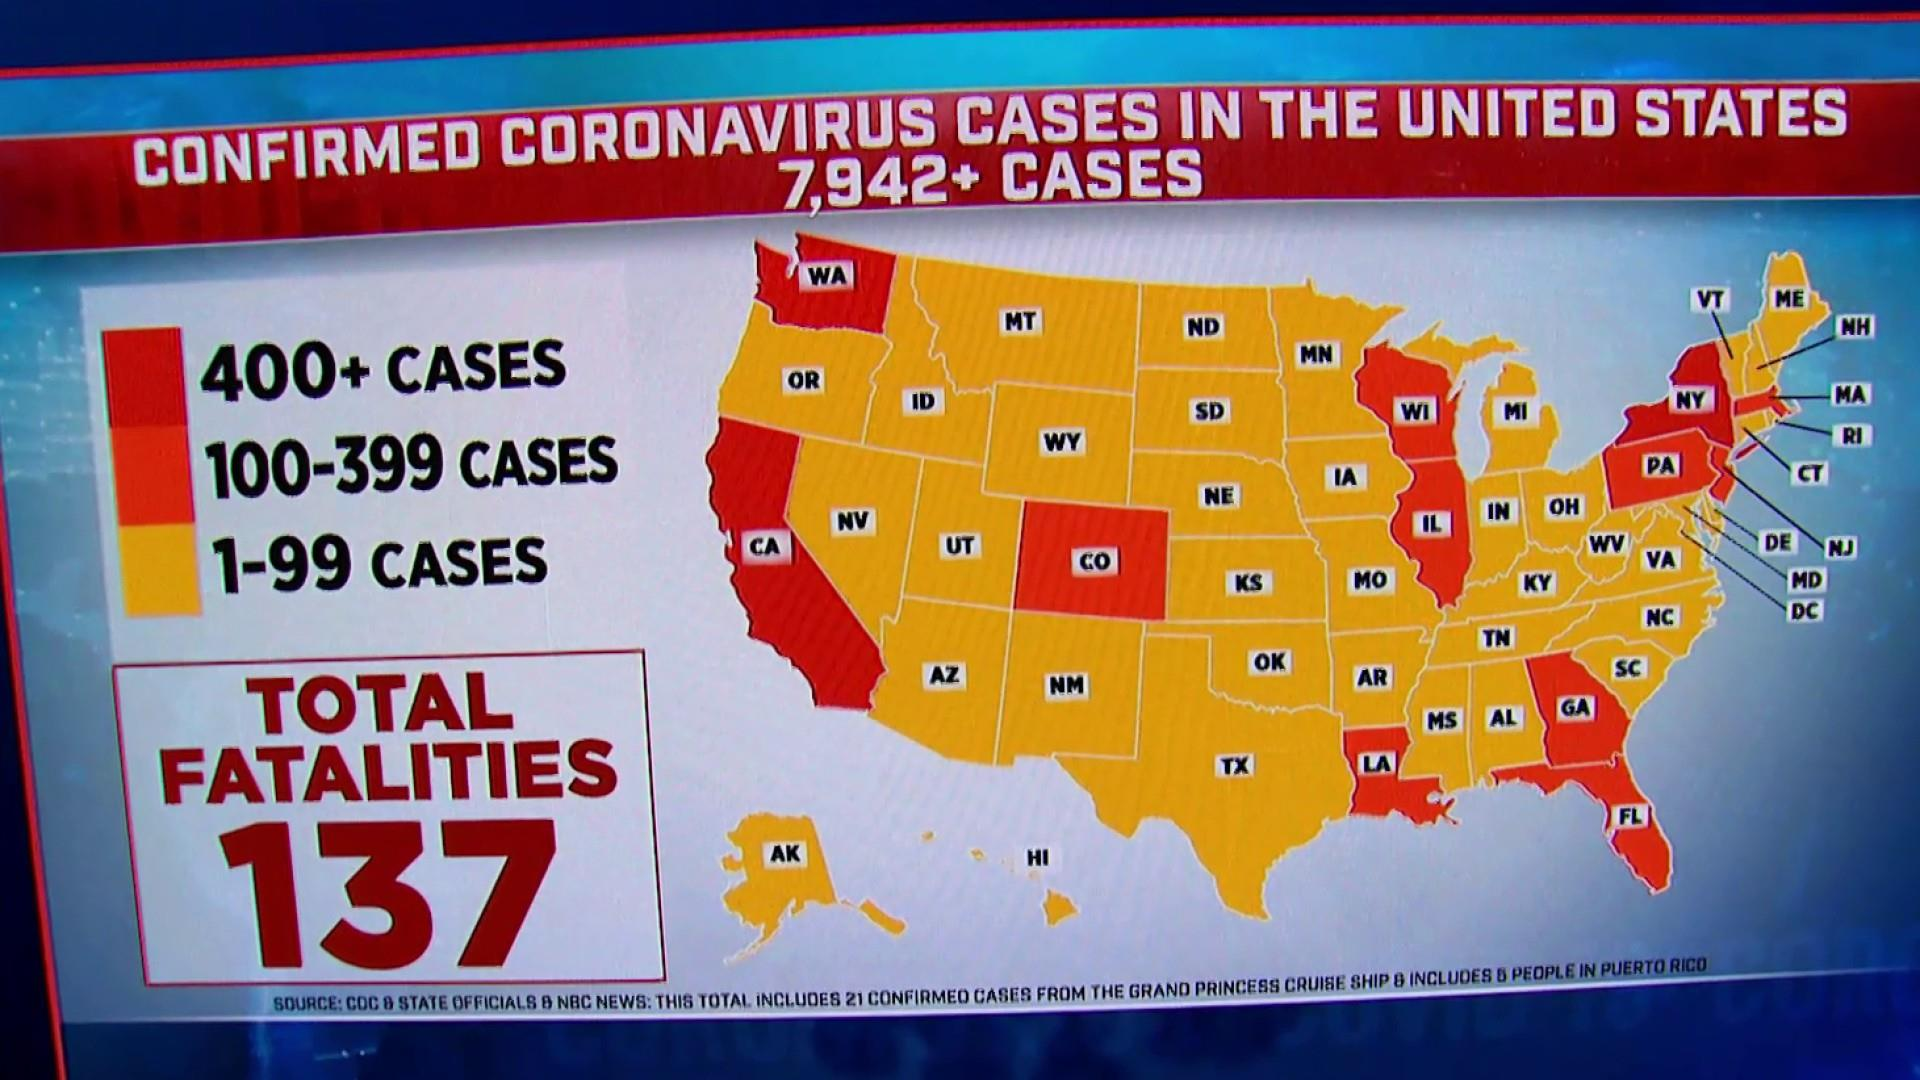 More than 7900 cases of coronavirus confirmed in the US